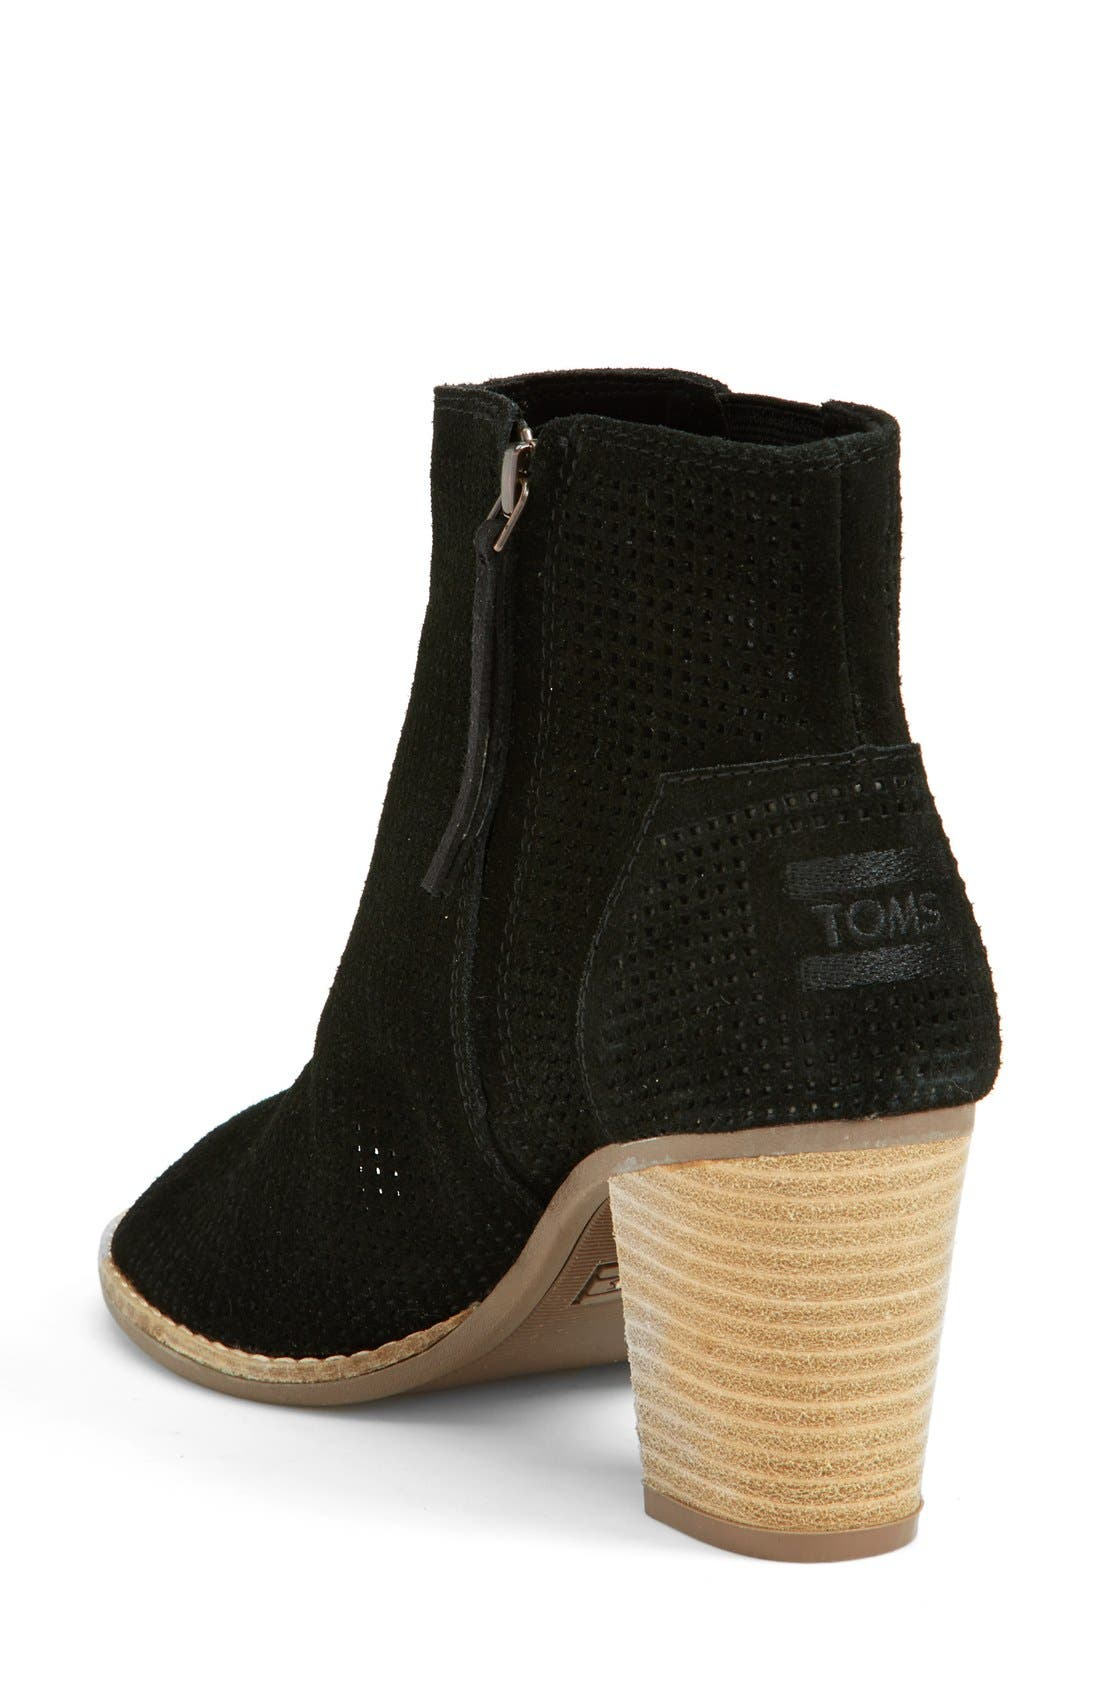 'Majorca' Suede Bootie,                             Alternate thumbnail 3, color,                             001